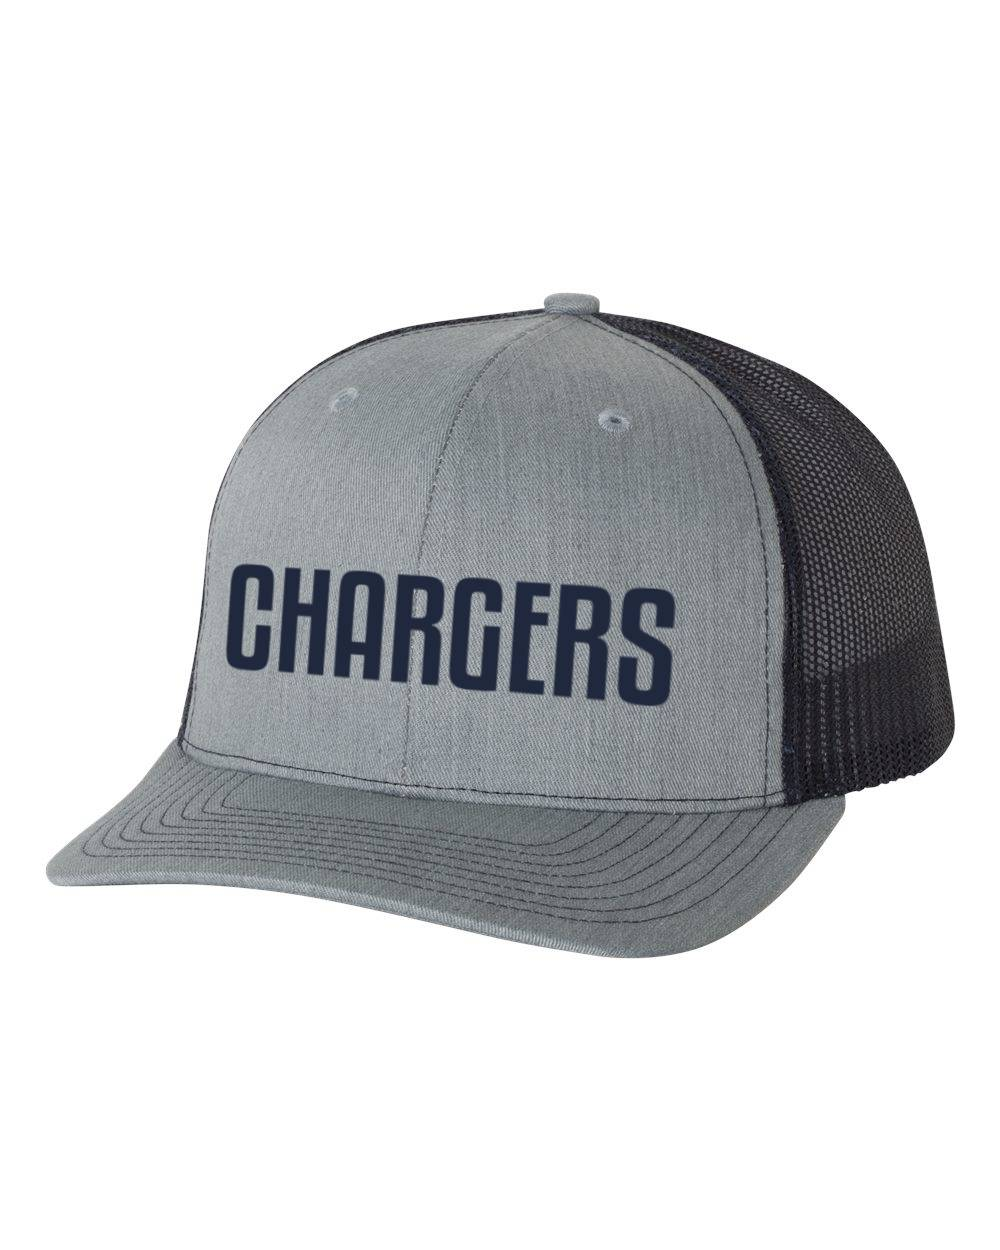 Chargers_112